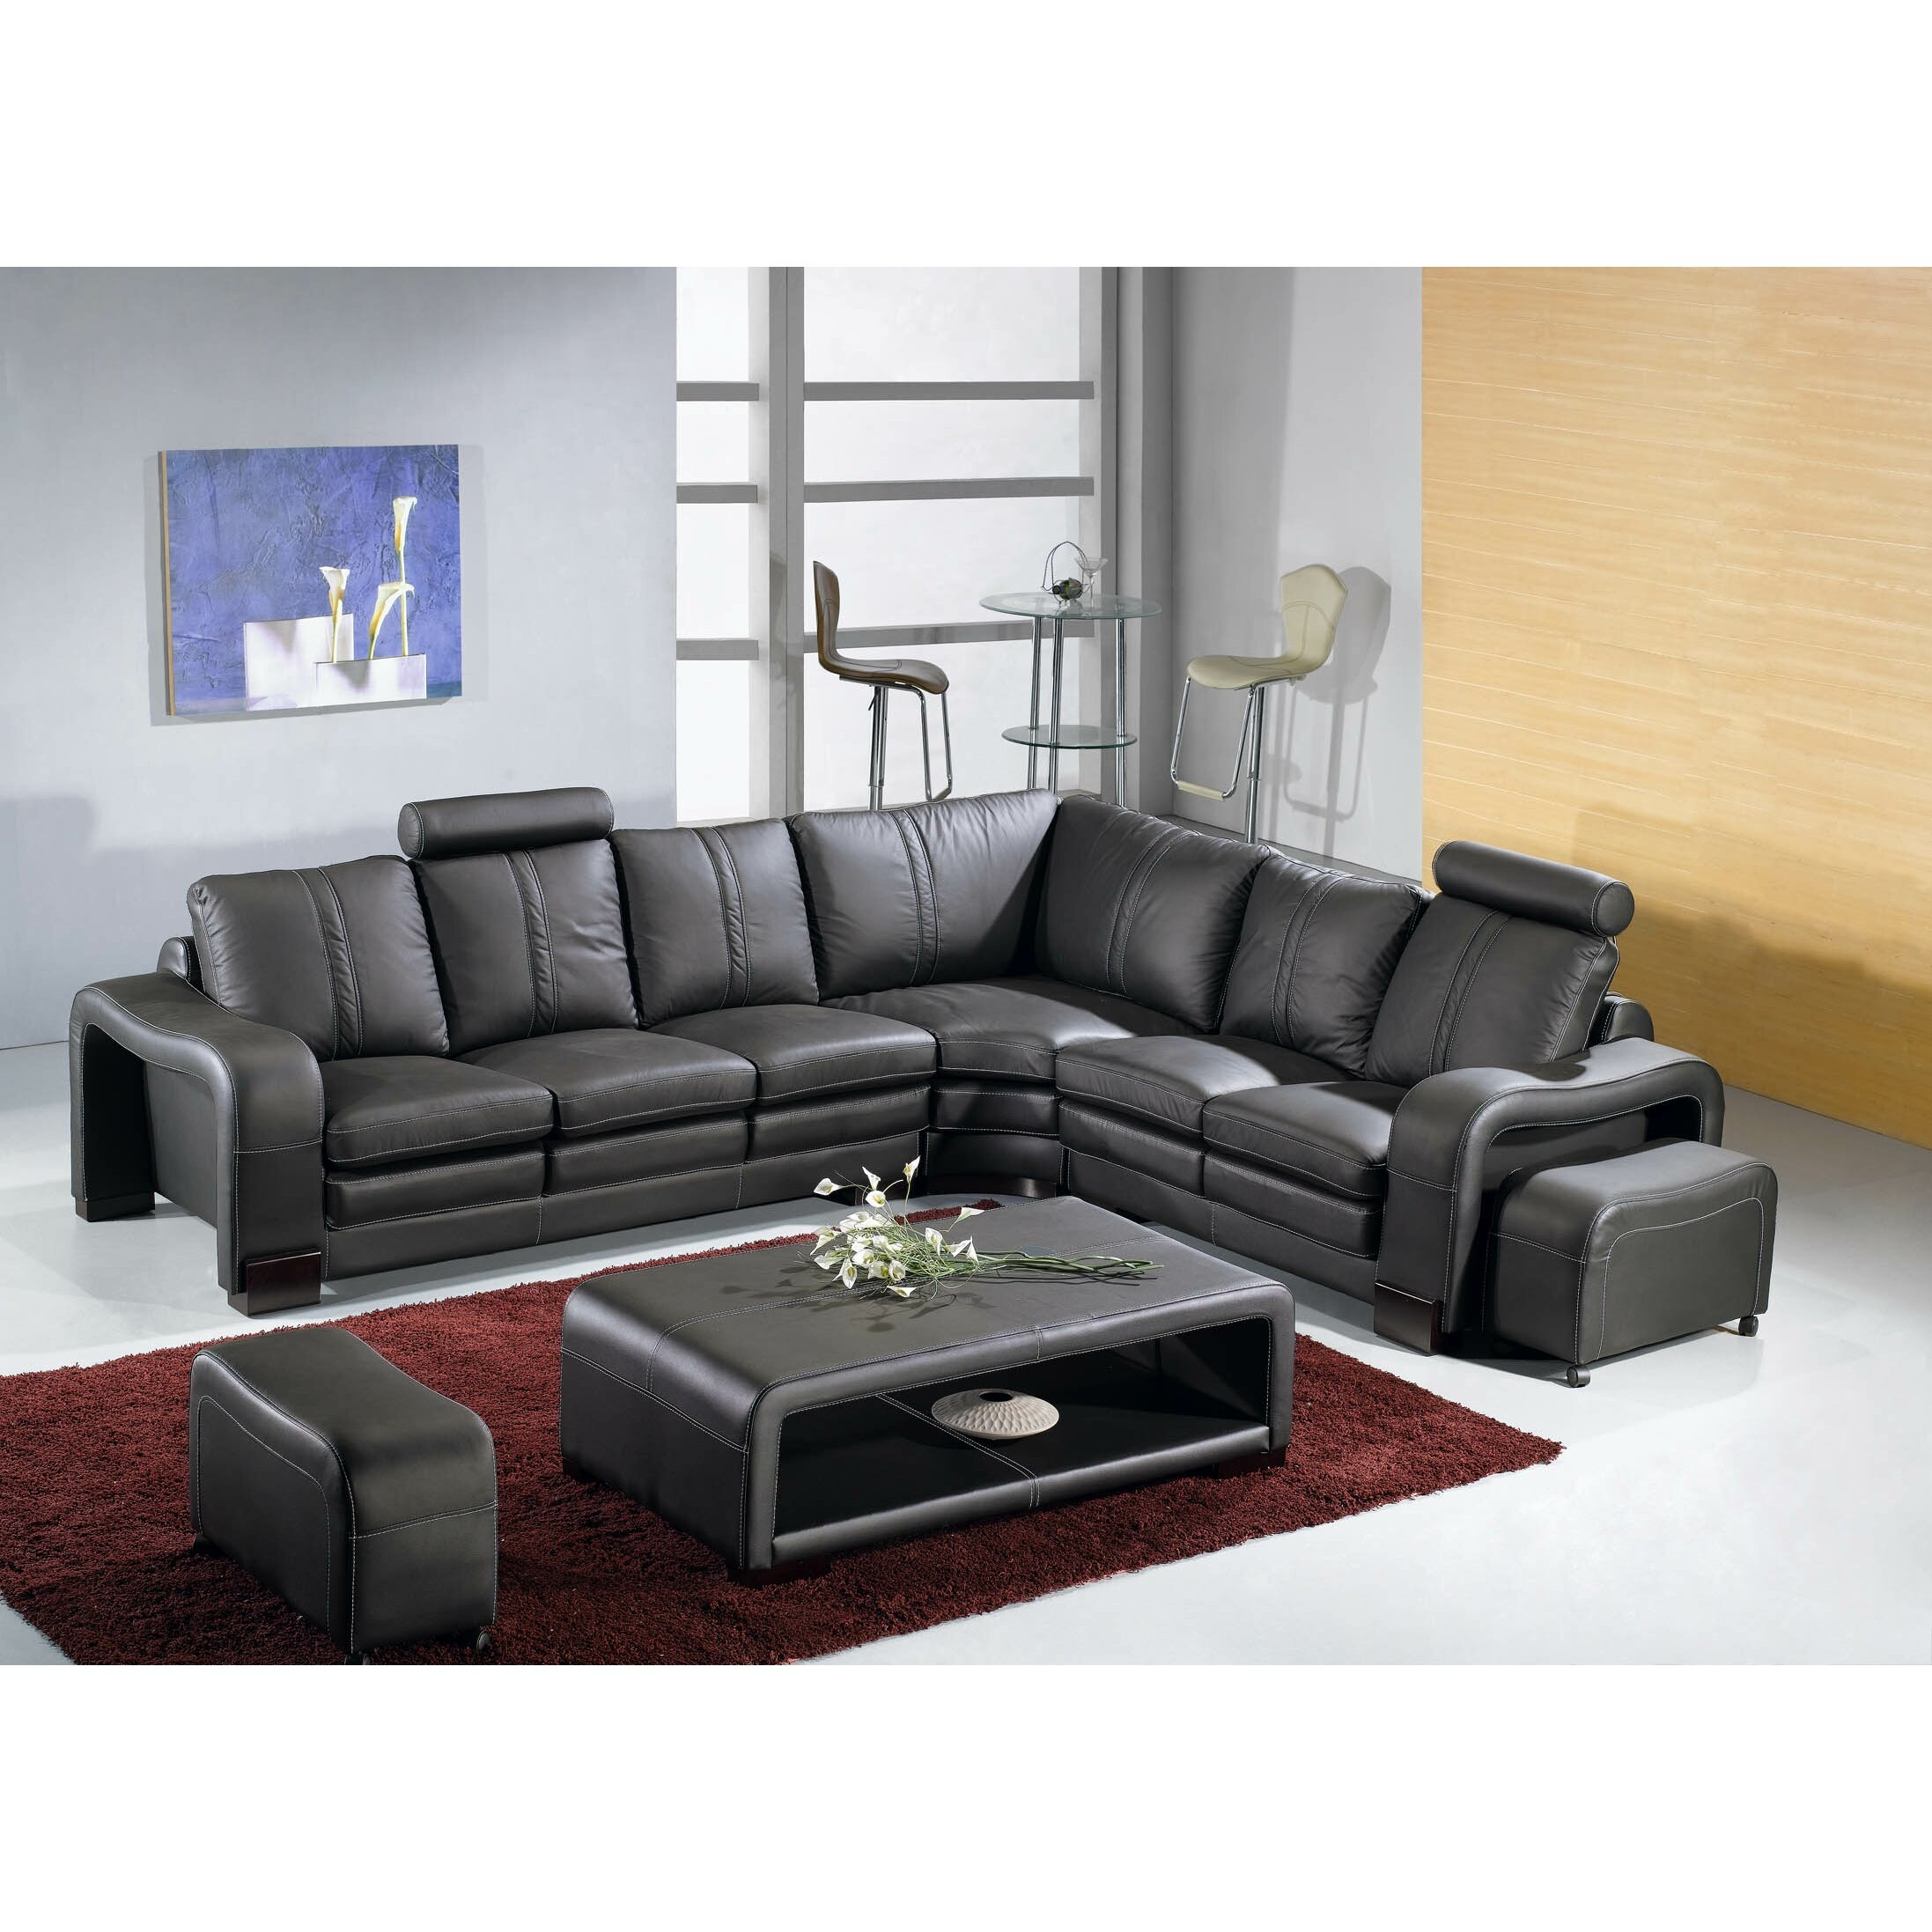 Leather Sofa Costco Canada picture on Leather Sofa Costco Canada37b94213fb8987b642dc3480bcaf4b48 with Leather Sofa Costco Canada, sofa c3f7c464a6d899fcac5f76acf186807f